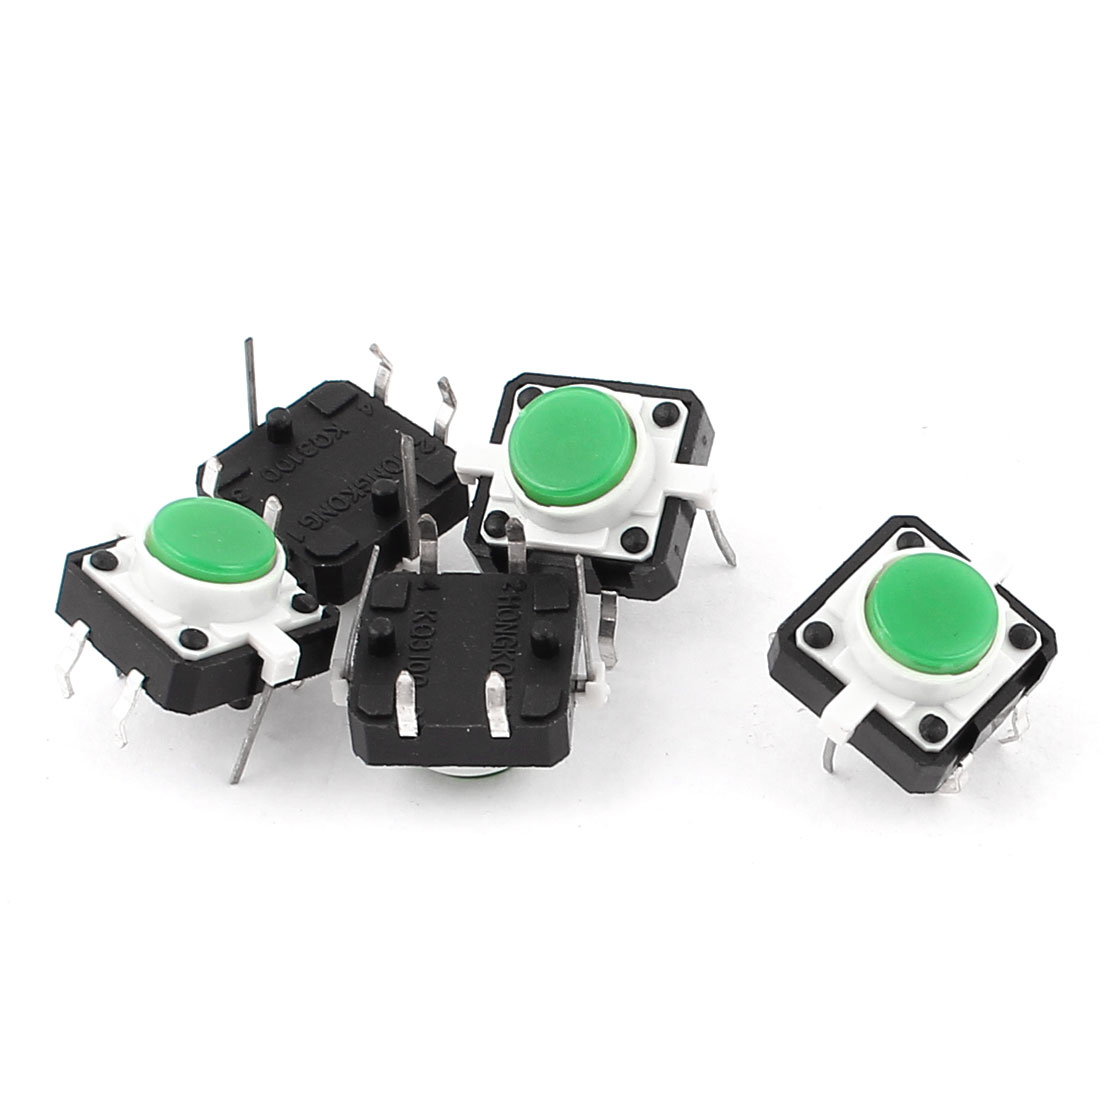 5 Pcs 12x12x7mm Momentary 4pin Green Lamp Push Button Tact Switches